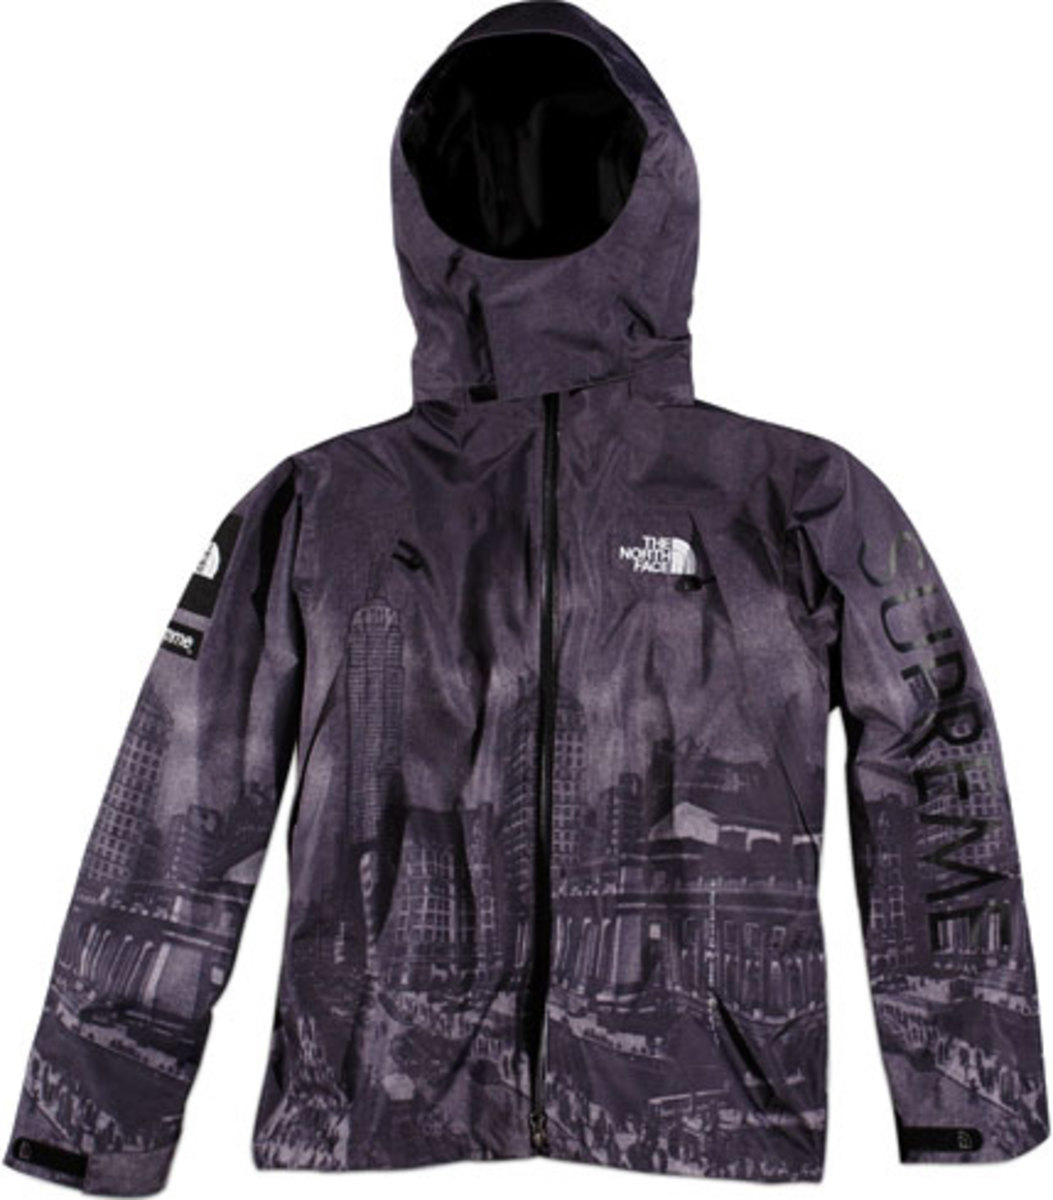 Supreme x The North Face - Summit Series Jackets - 2